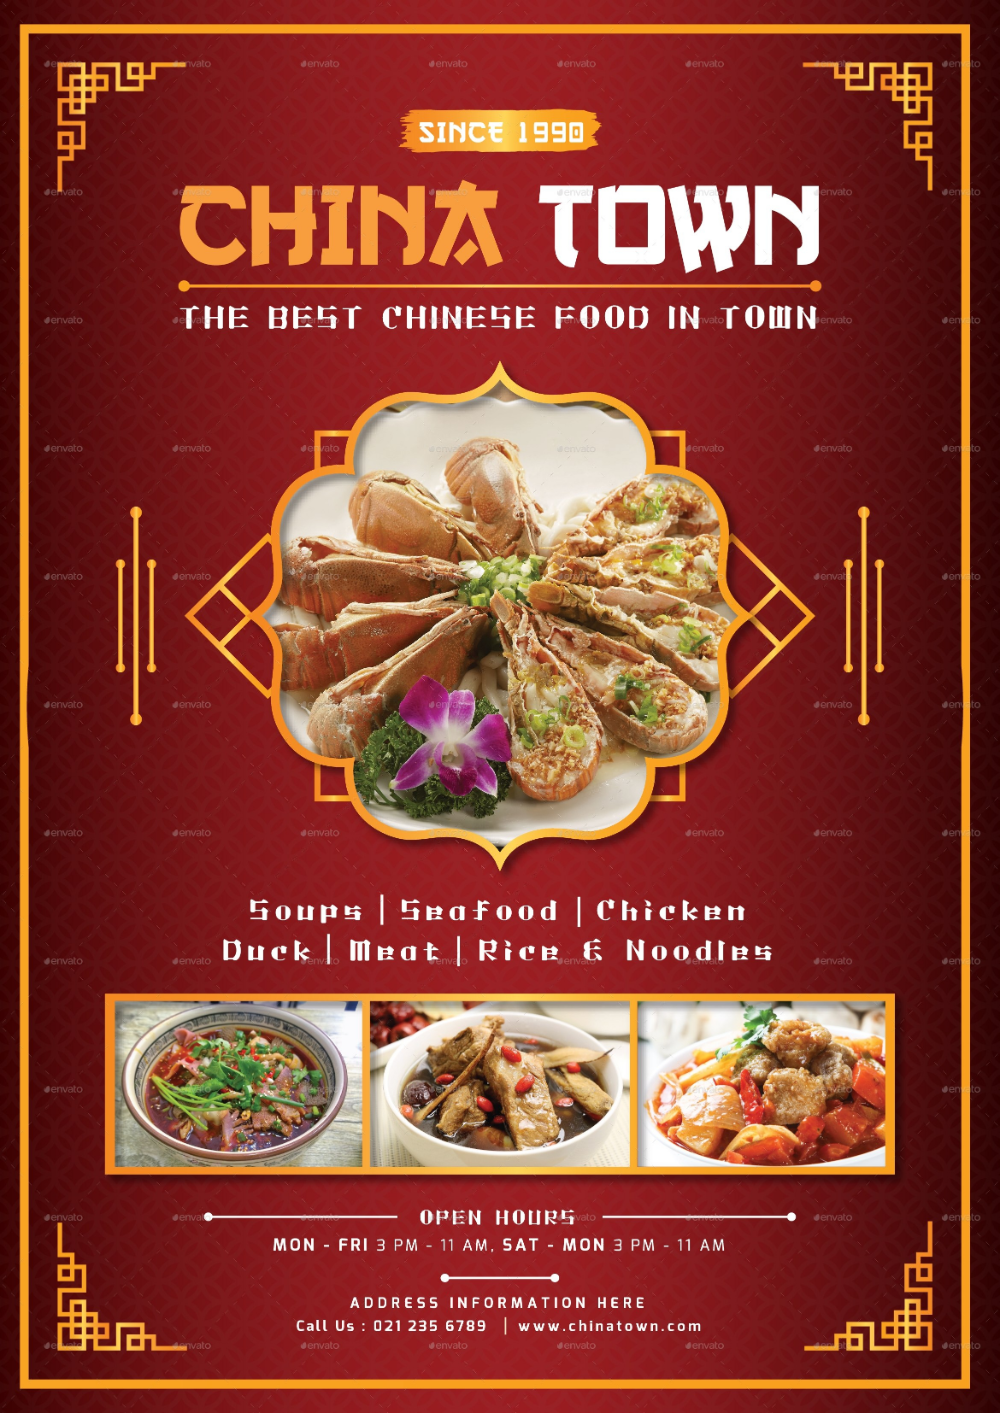 Chinese Food Menu Designs Examples Psd Ai Docs Pages With Asian Restaurant Menu Template 10 Professional Templates Ideas 10 Professional อาหาร ร านอาหาร